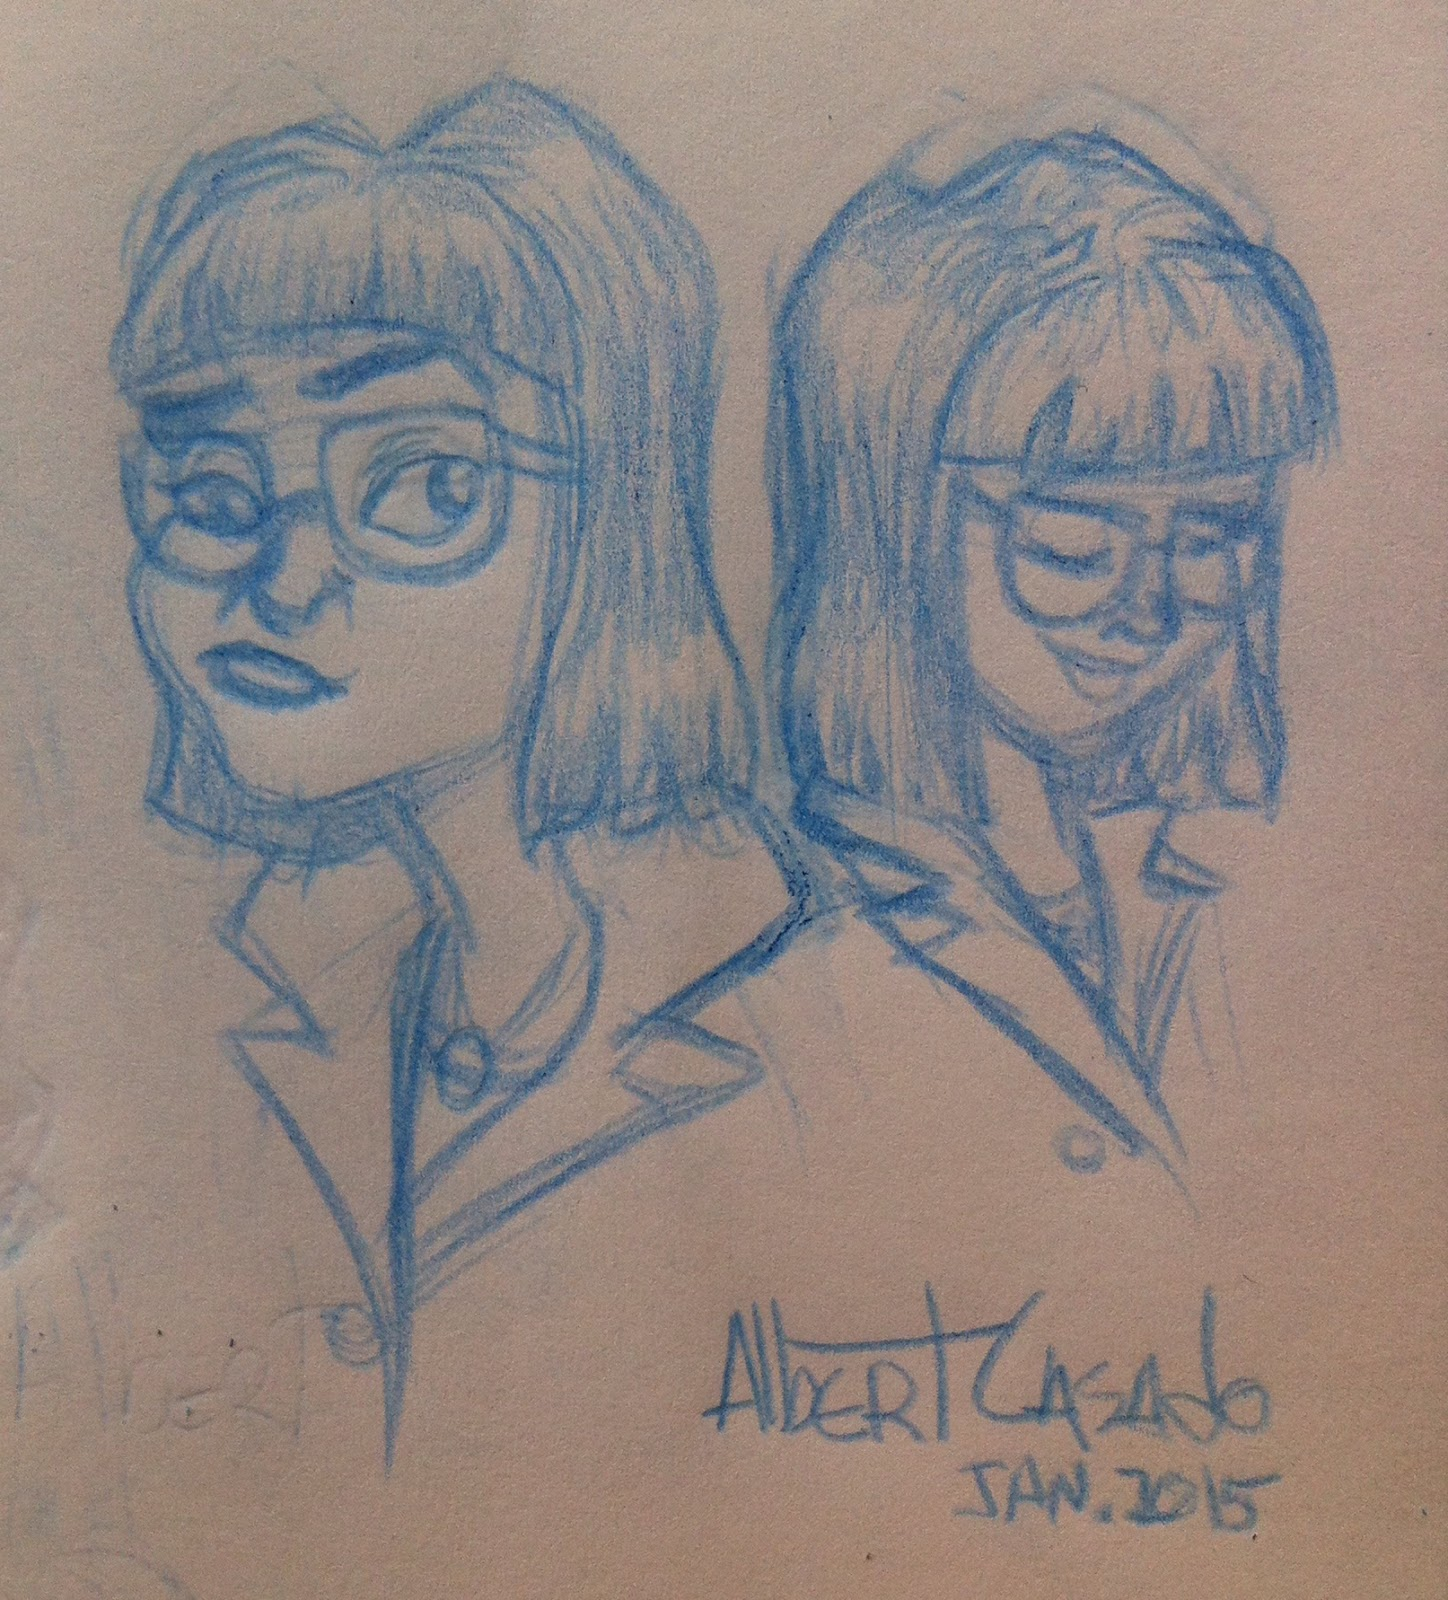 'Susan sketches' - Albert Casado